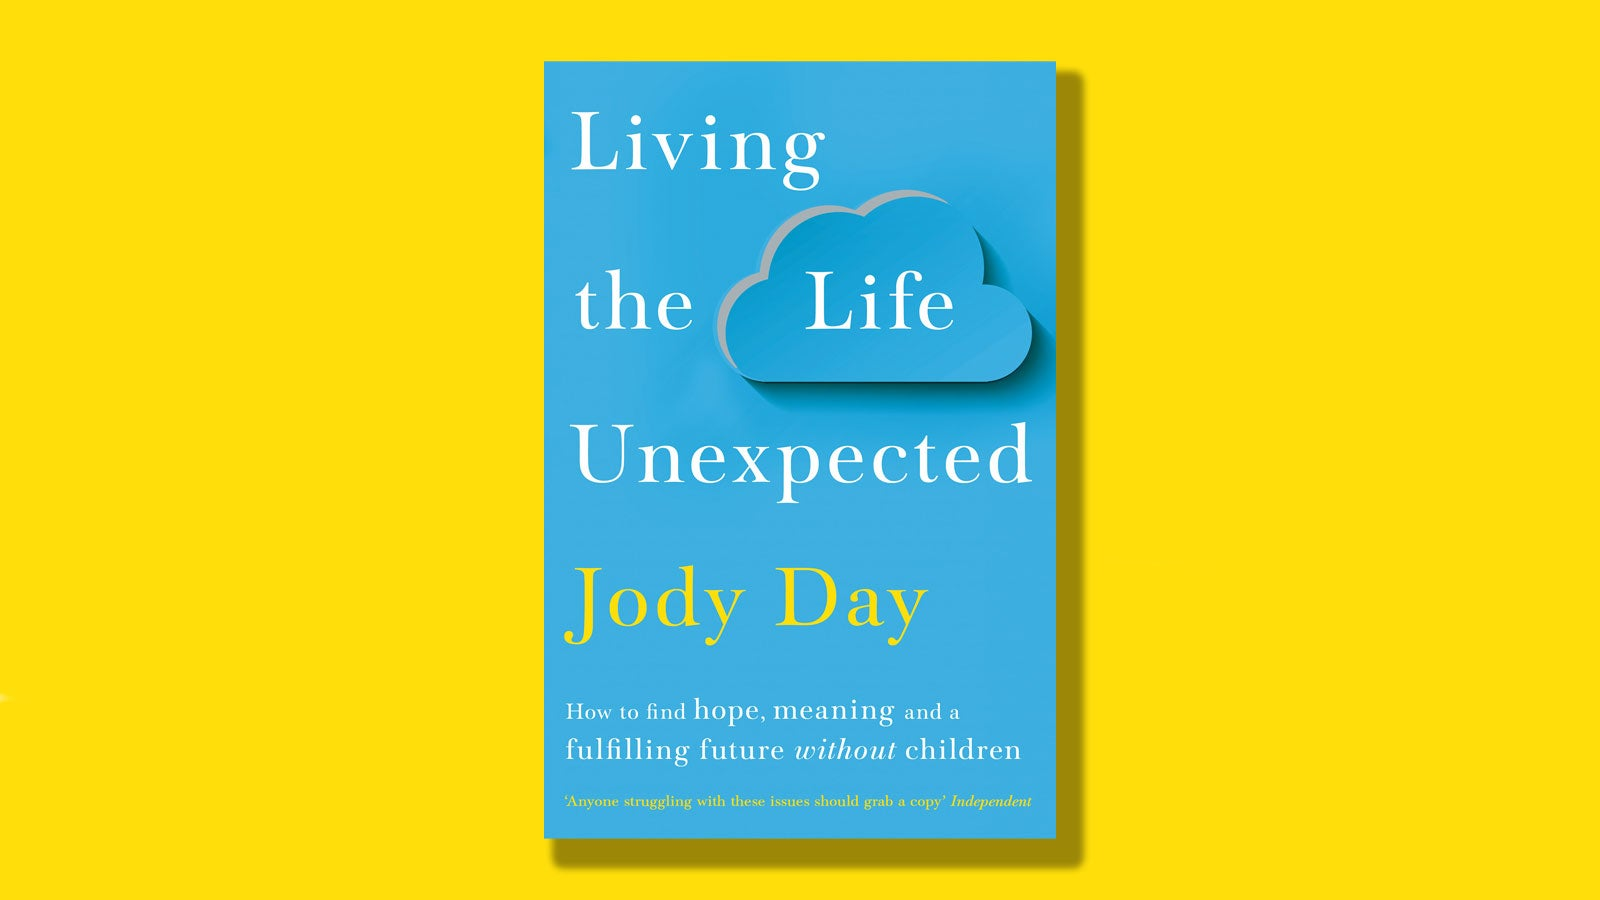 Living the Life Unexpected book cover